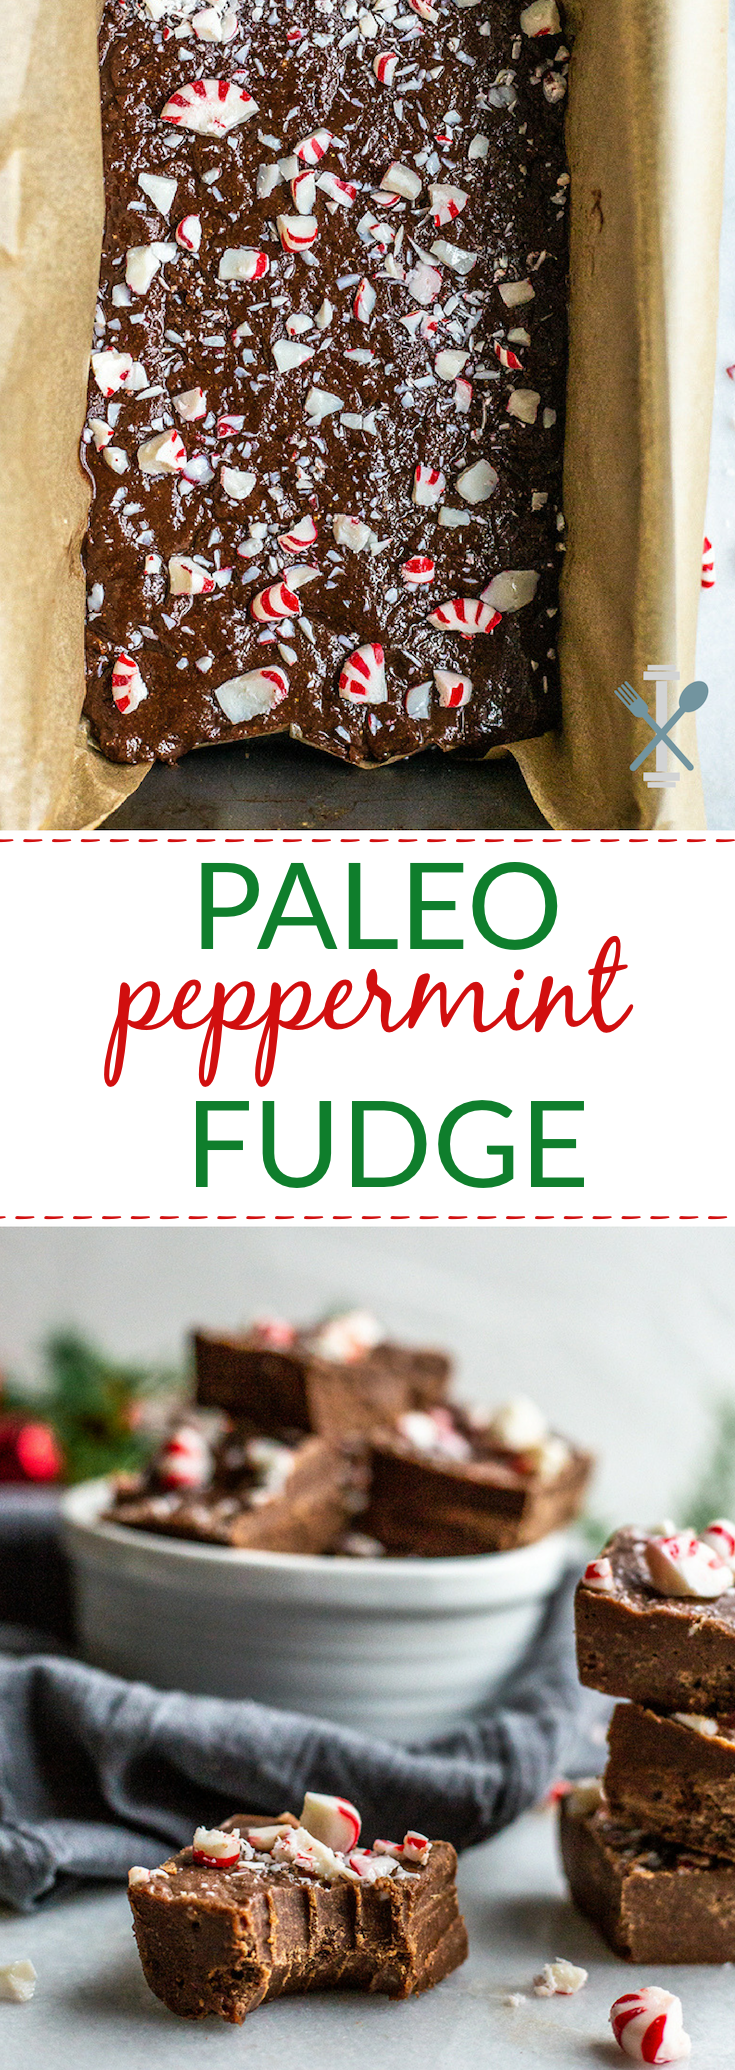 This dairy free, paleo peppermint fudge is a simple yet decadent holiday treat! Naturally sweetened